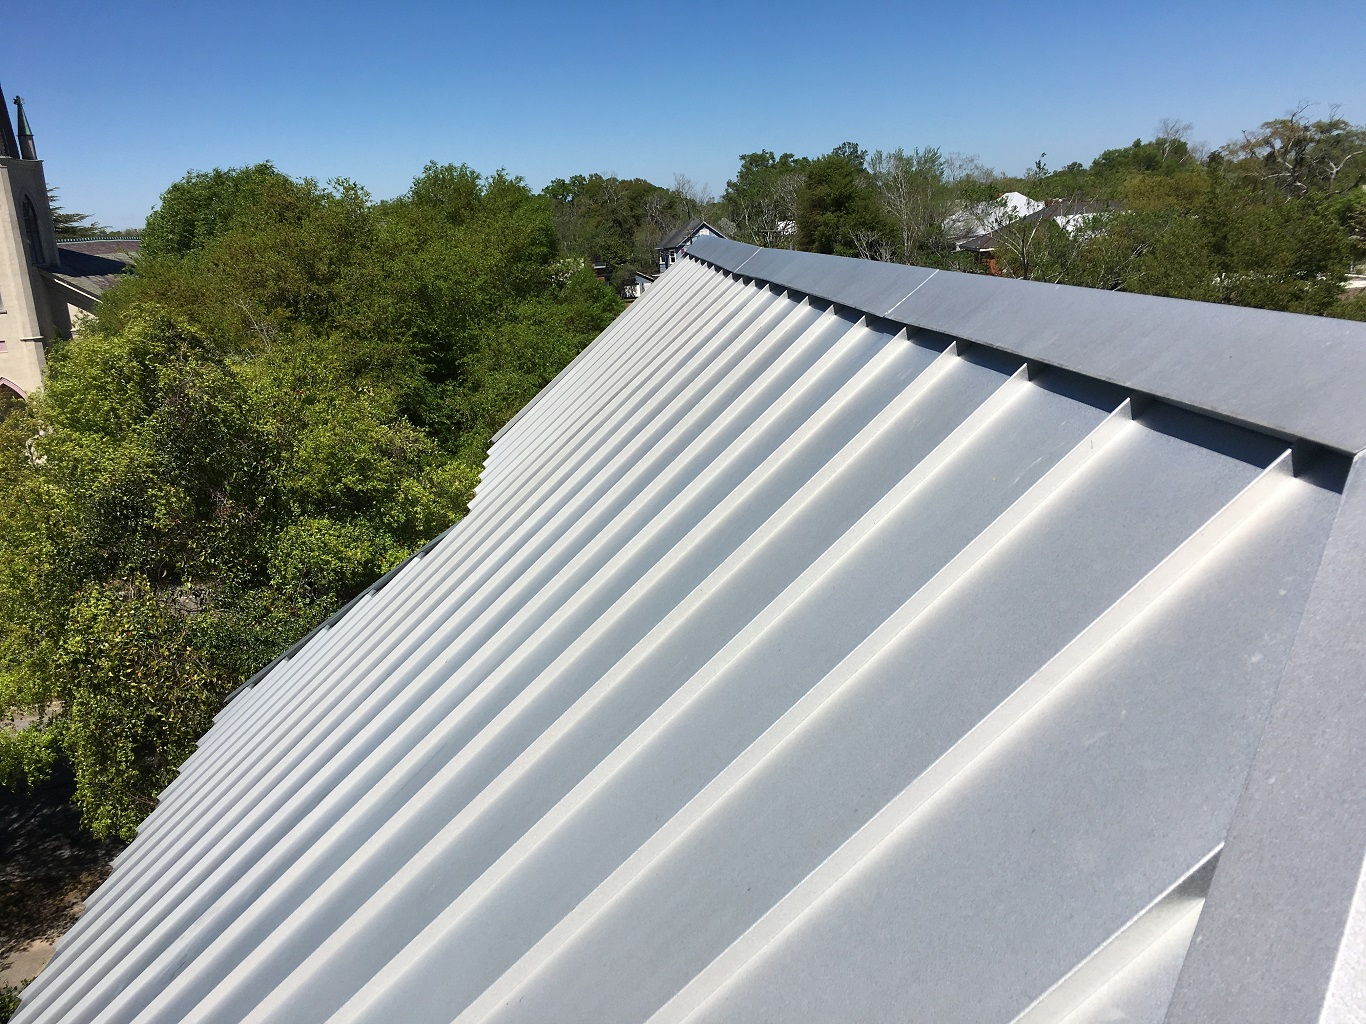 Cheap Installing a Metal Roof Yourself